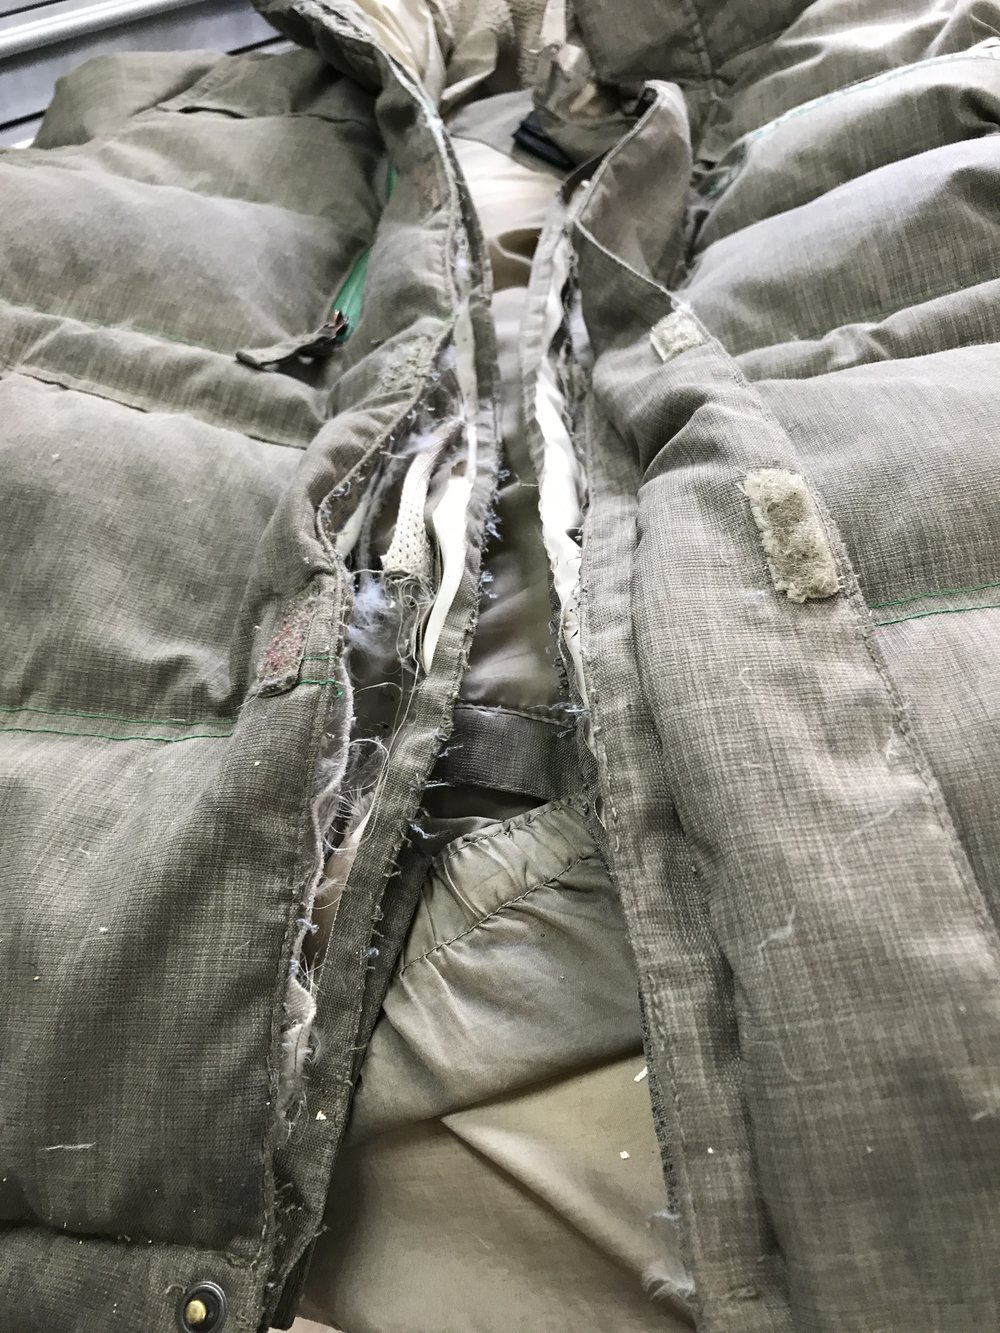 Zipper replacement is an involved process! & Outdoor Gear Repair - The Fixed Line - Replace Zippers in jackets ...